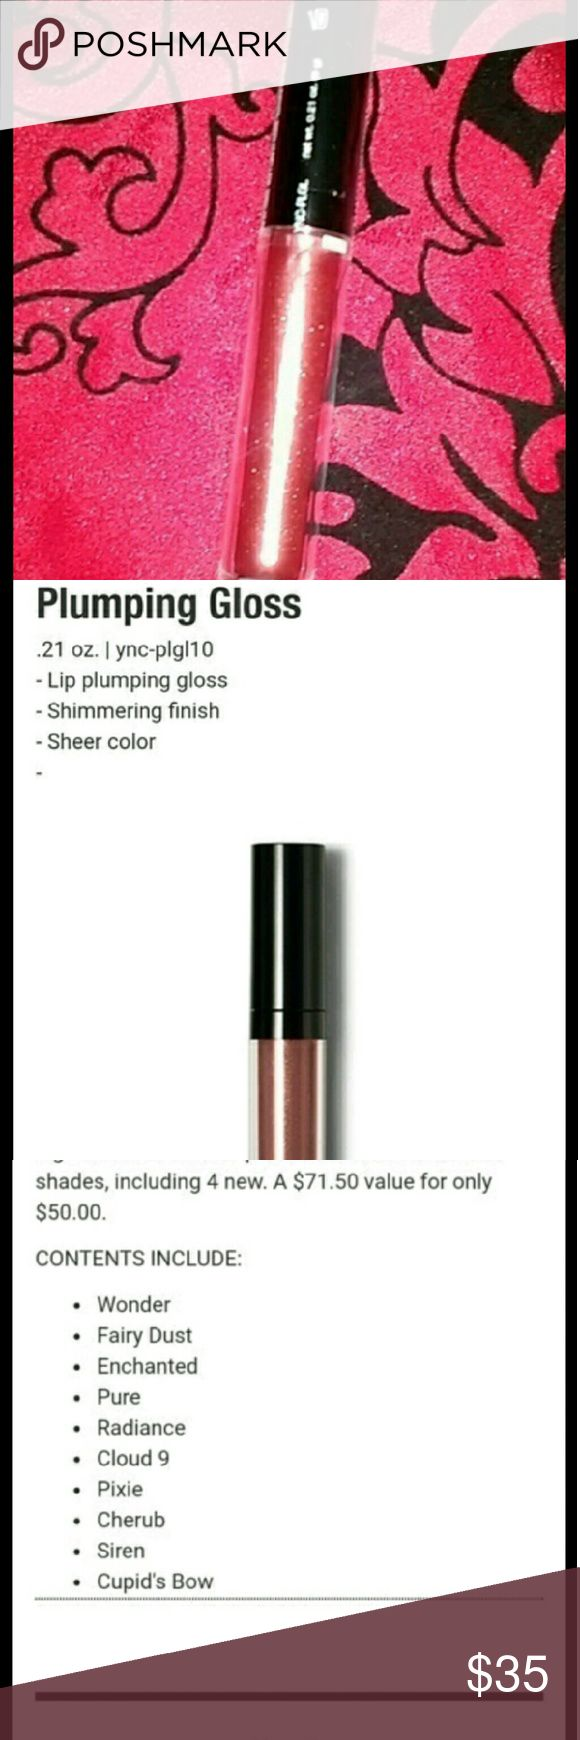 Best lip #plumper ever In color cupids bow Color is Cupid's bow.  All natural and cruelty free paraben free Best plumpinh gloss with a gorgeous light color finish, you can use over #lipstick or alone .  See all pics Free gift with purchases and bundles  Make offers and bundles! I'm extremely flexible   #tarte #nyx #benefits #gloss #katvond #anastasia #urbandecay #toofaced #lipstick #bobbibrownmakeup #plump #botox Makeup Lip Balm & Gloss